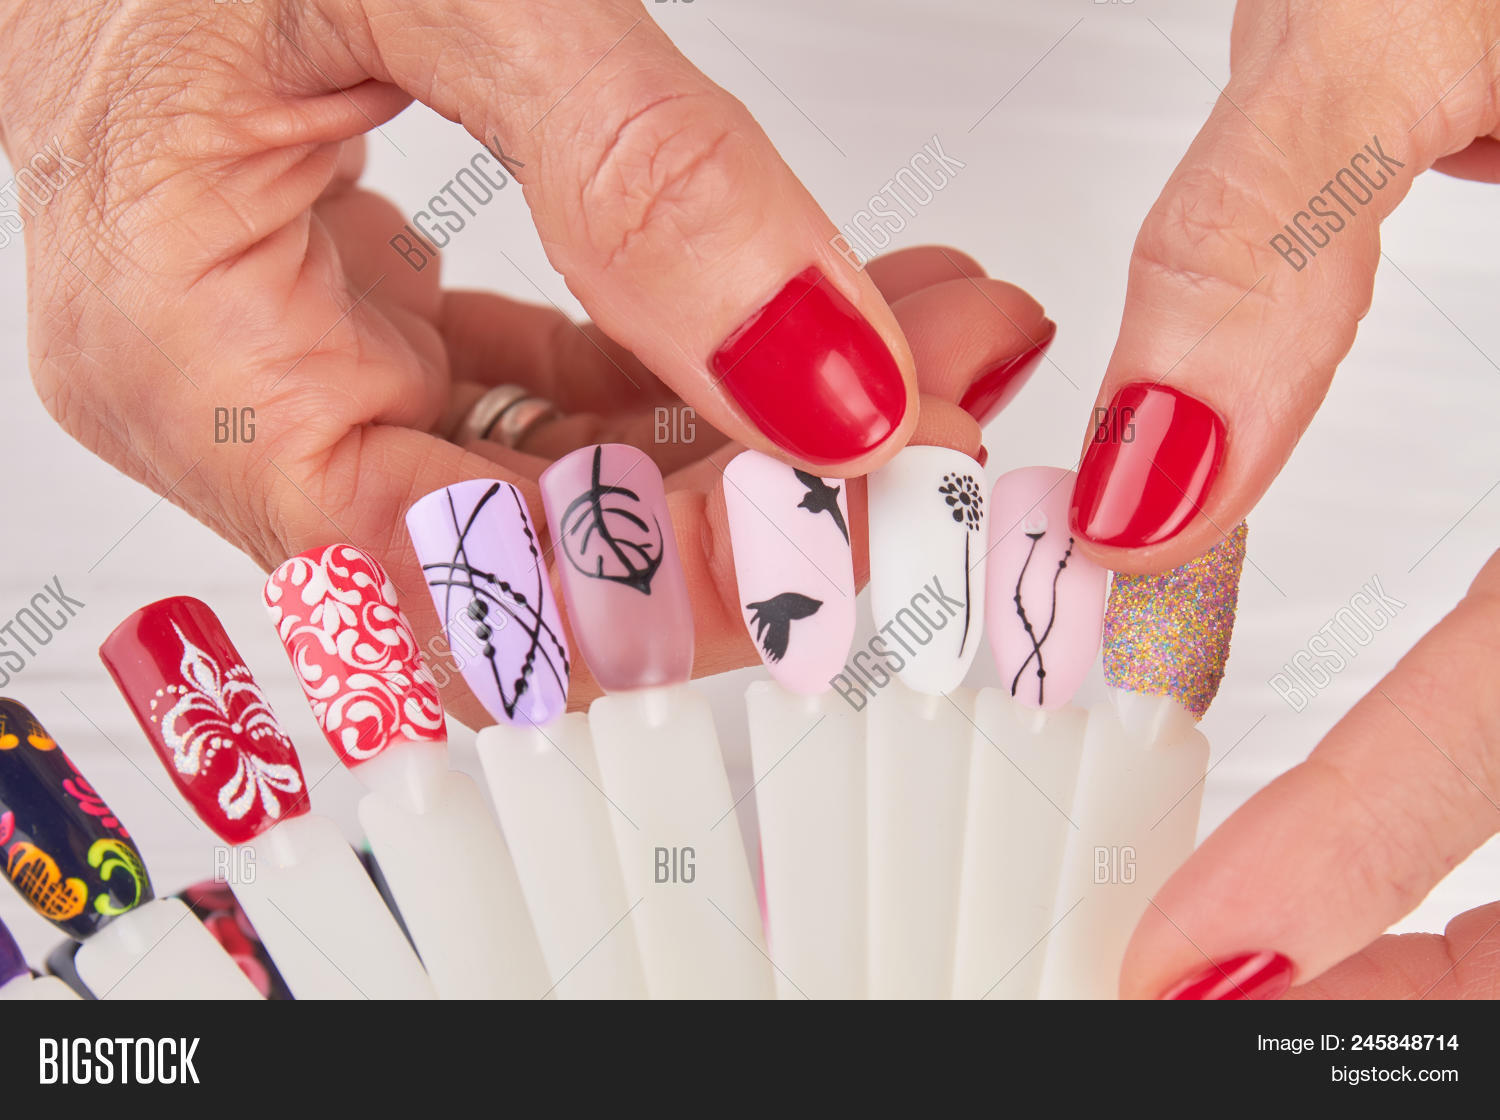 Manicured Hands Image Photo Free Trial Bigstock